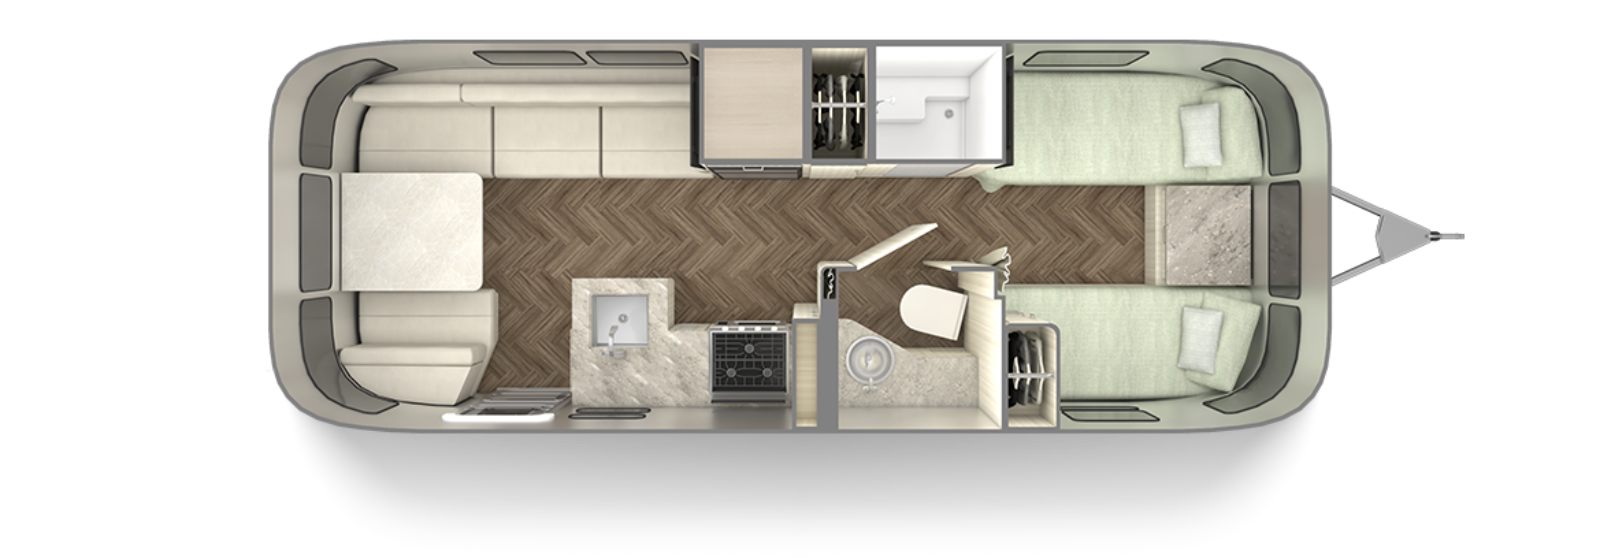 2021-Airstream-International-25FB-floor-plan-twin-seashell